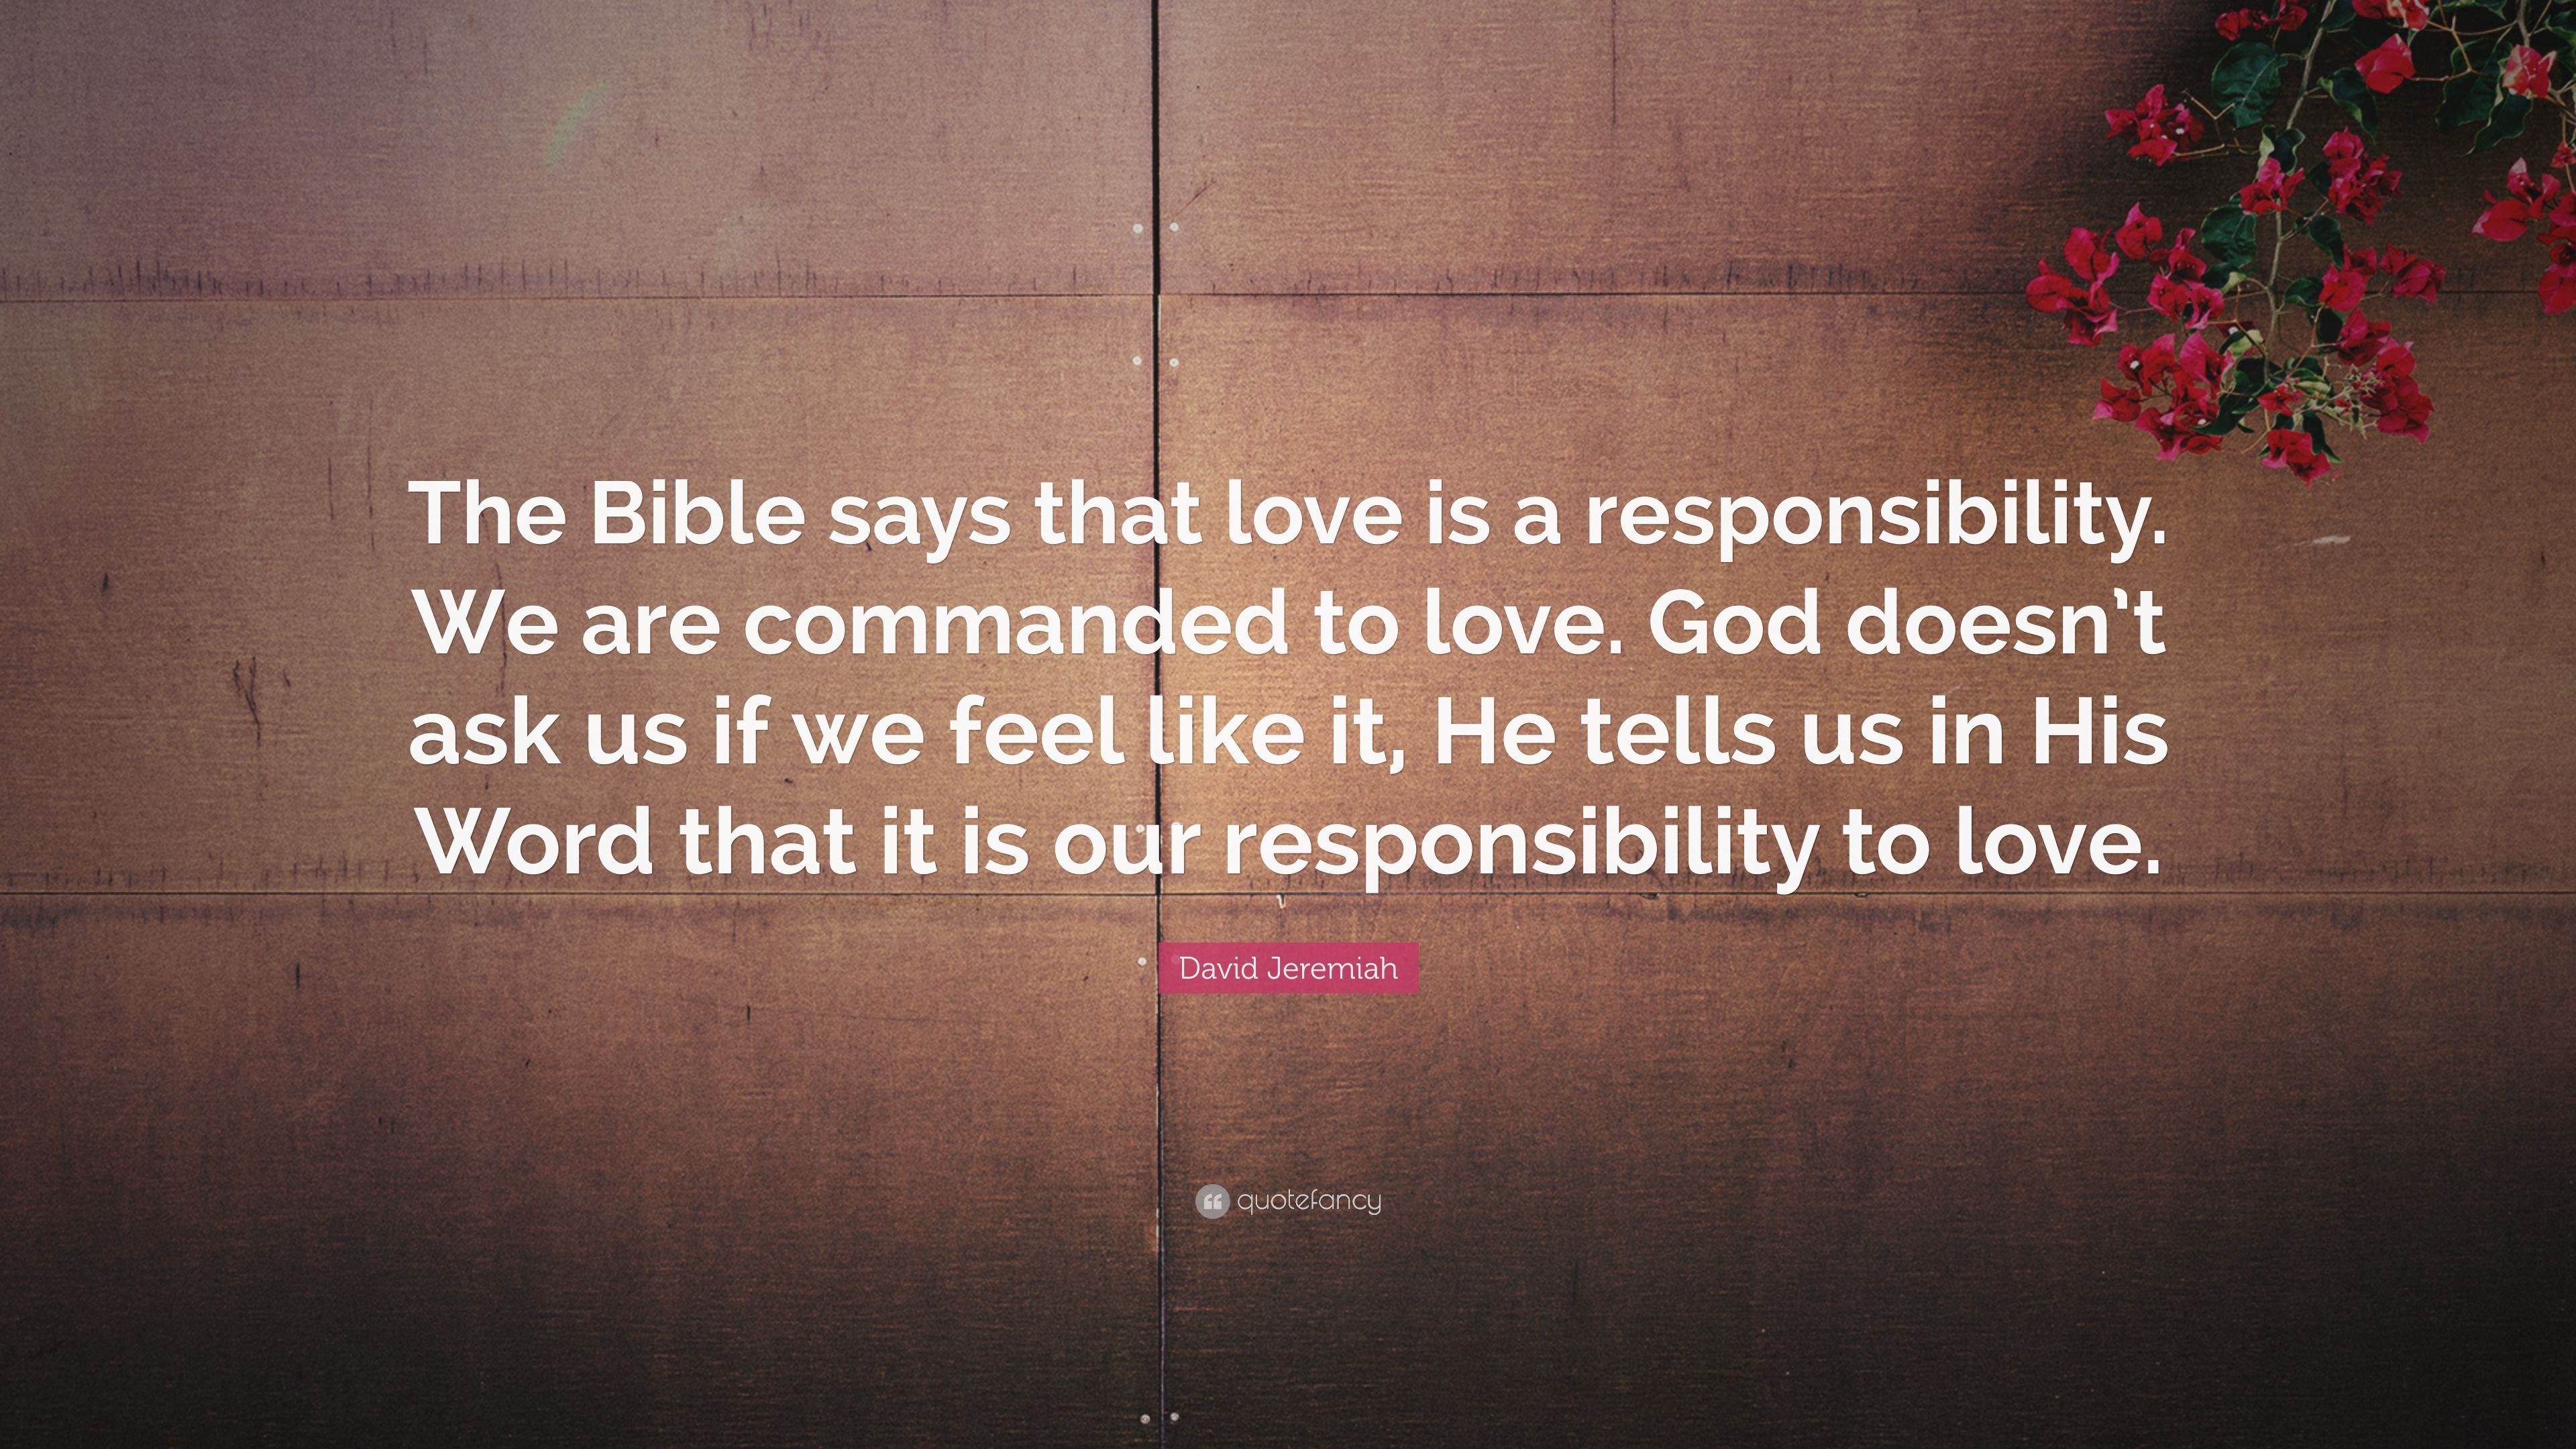 David Jeremiah Quote: The Bible says that love is a